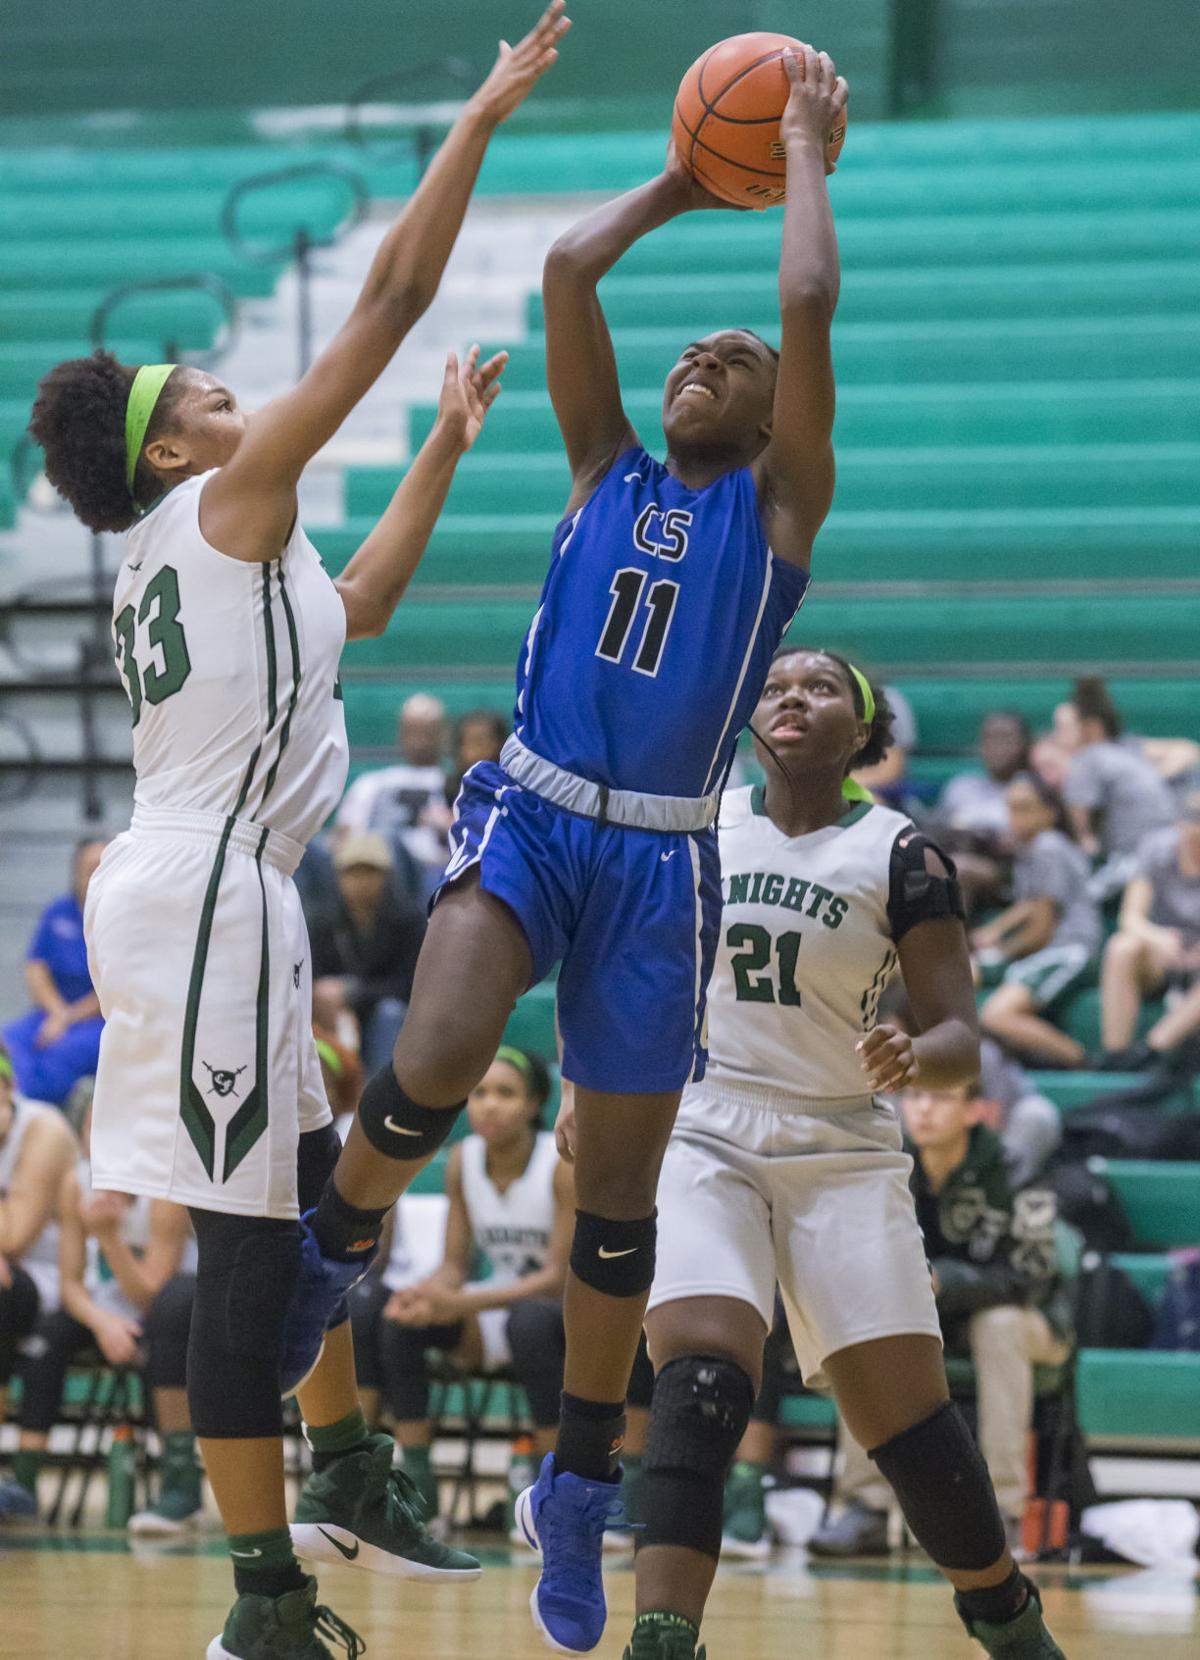 Clear Falls vs Clear Springs Girls Basketball